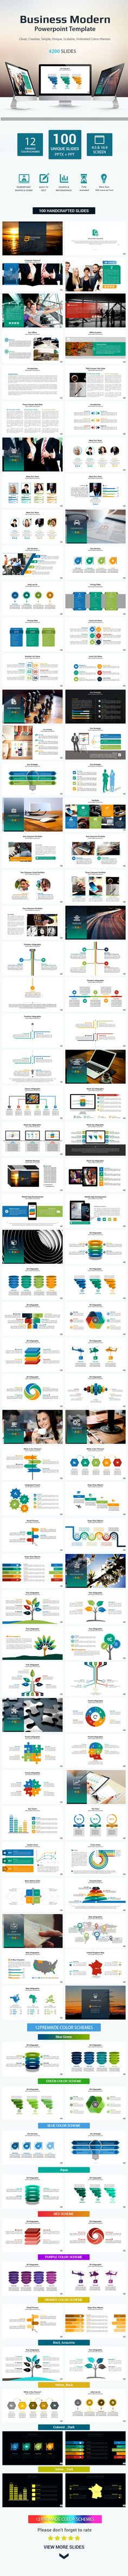 Business Modern Presentation Template #infographics #unique • Click here to download ! http://graphicriver.net/item/business-modern-presentation-template/10865858?s_rank=395&ref=pxcr